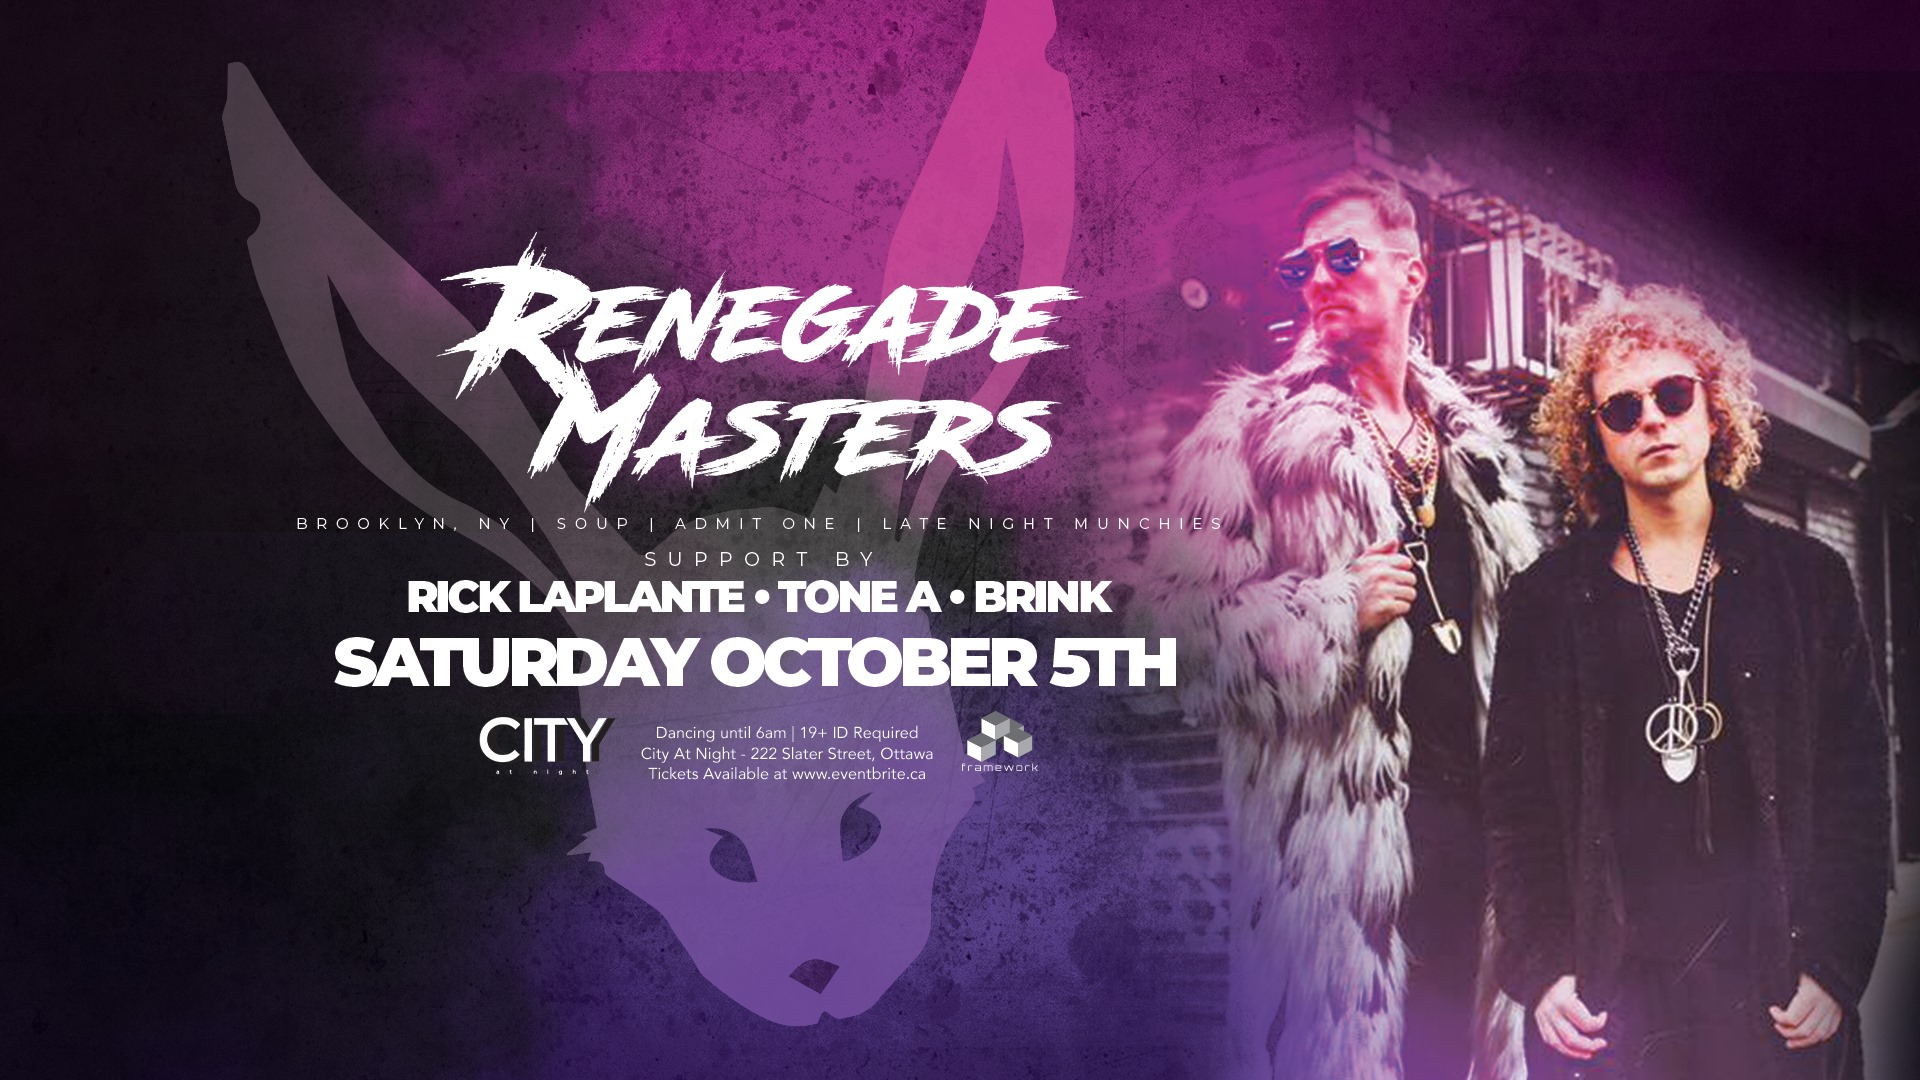 White Rabbit - Renegade Masters - Dancing 11pm to 6am